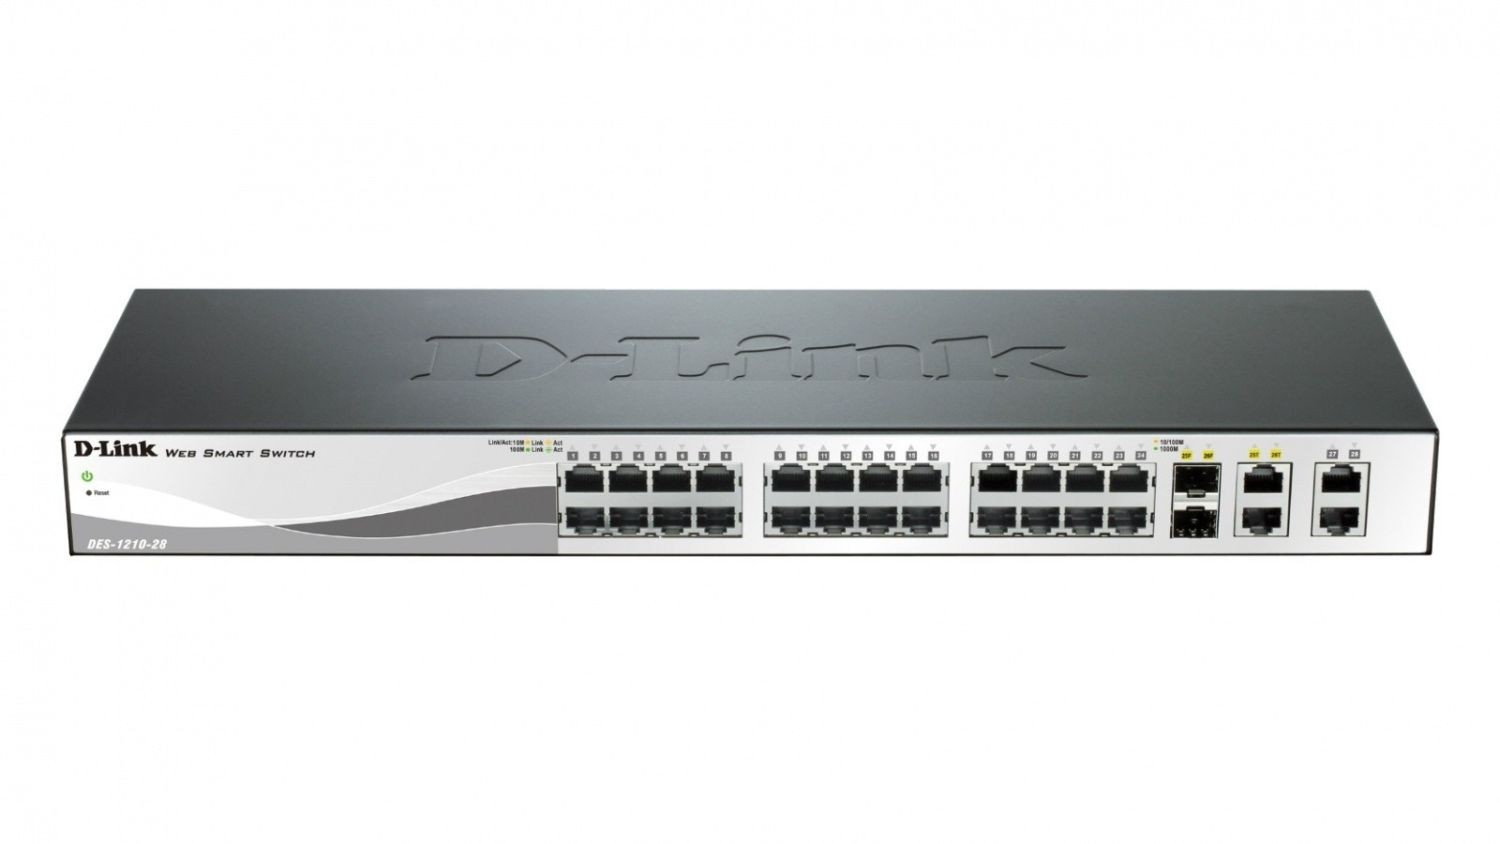 D-Link DES-1210-28 24-port 10/100 Smart Switch + 2 Combo 1000BaseT/SFP + 2 Gigabit